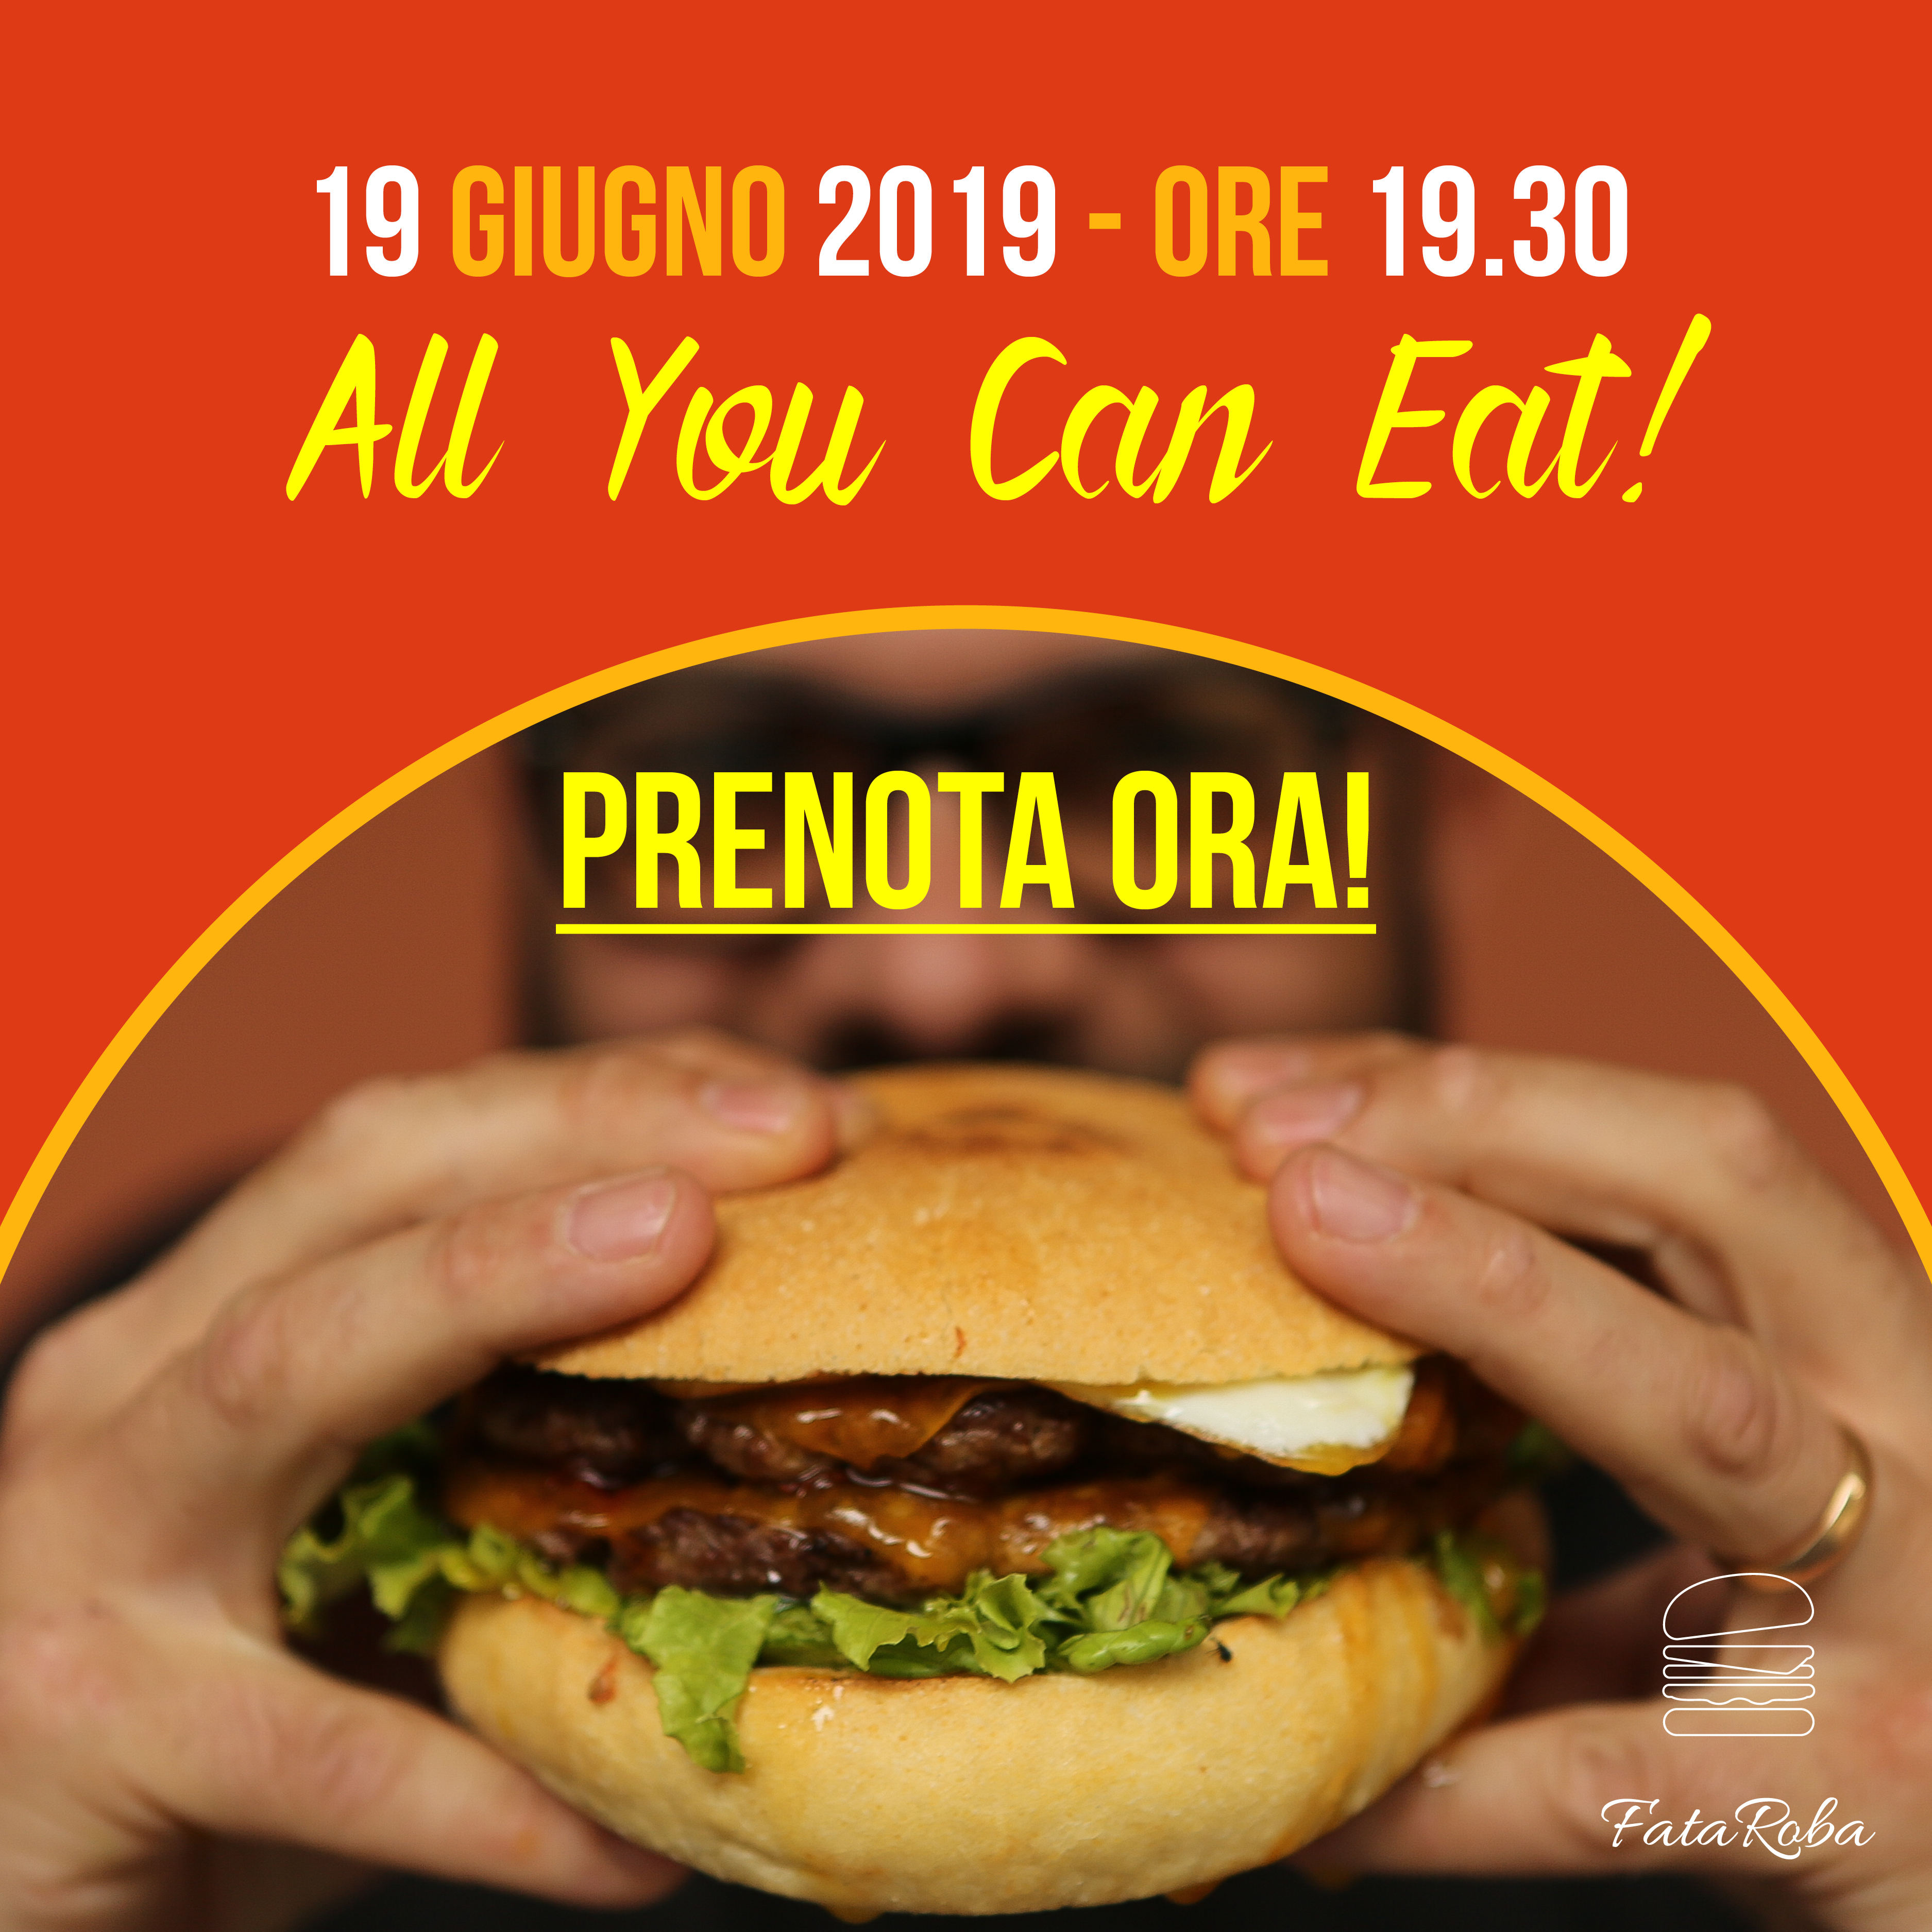 19 giugno all you can eat